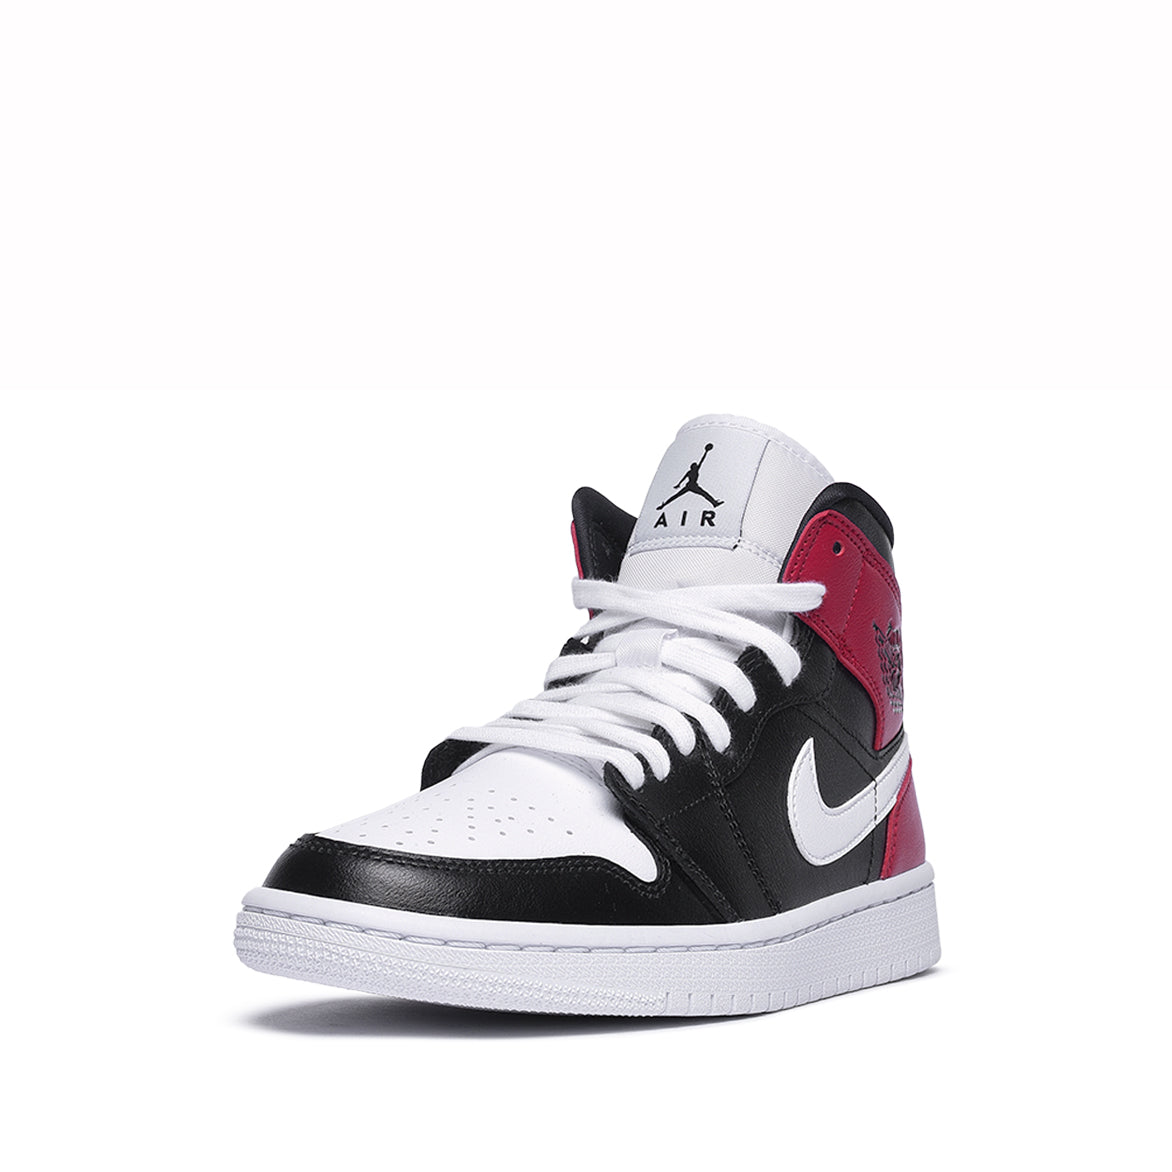 WMNS AIR JORDAN 1 MID - BLACK / WHITE / NOBLE RED